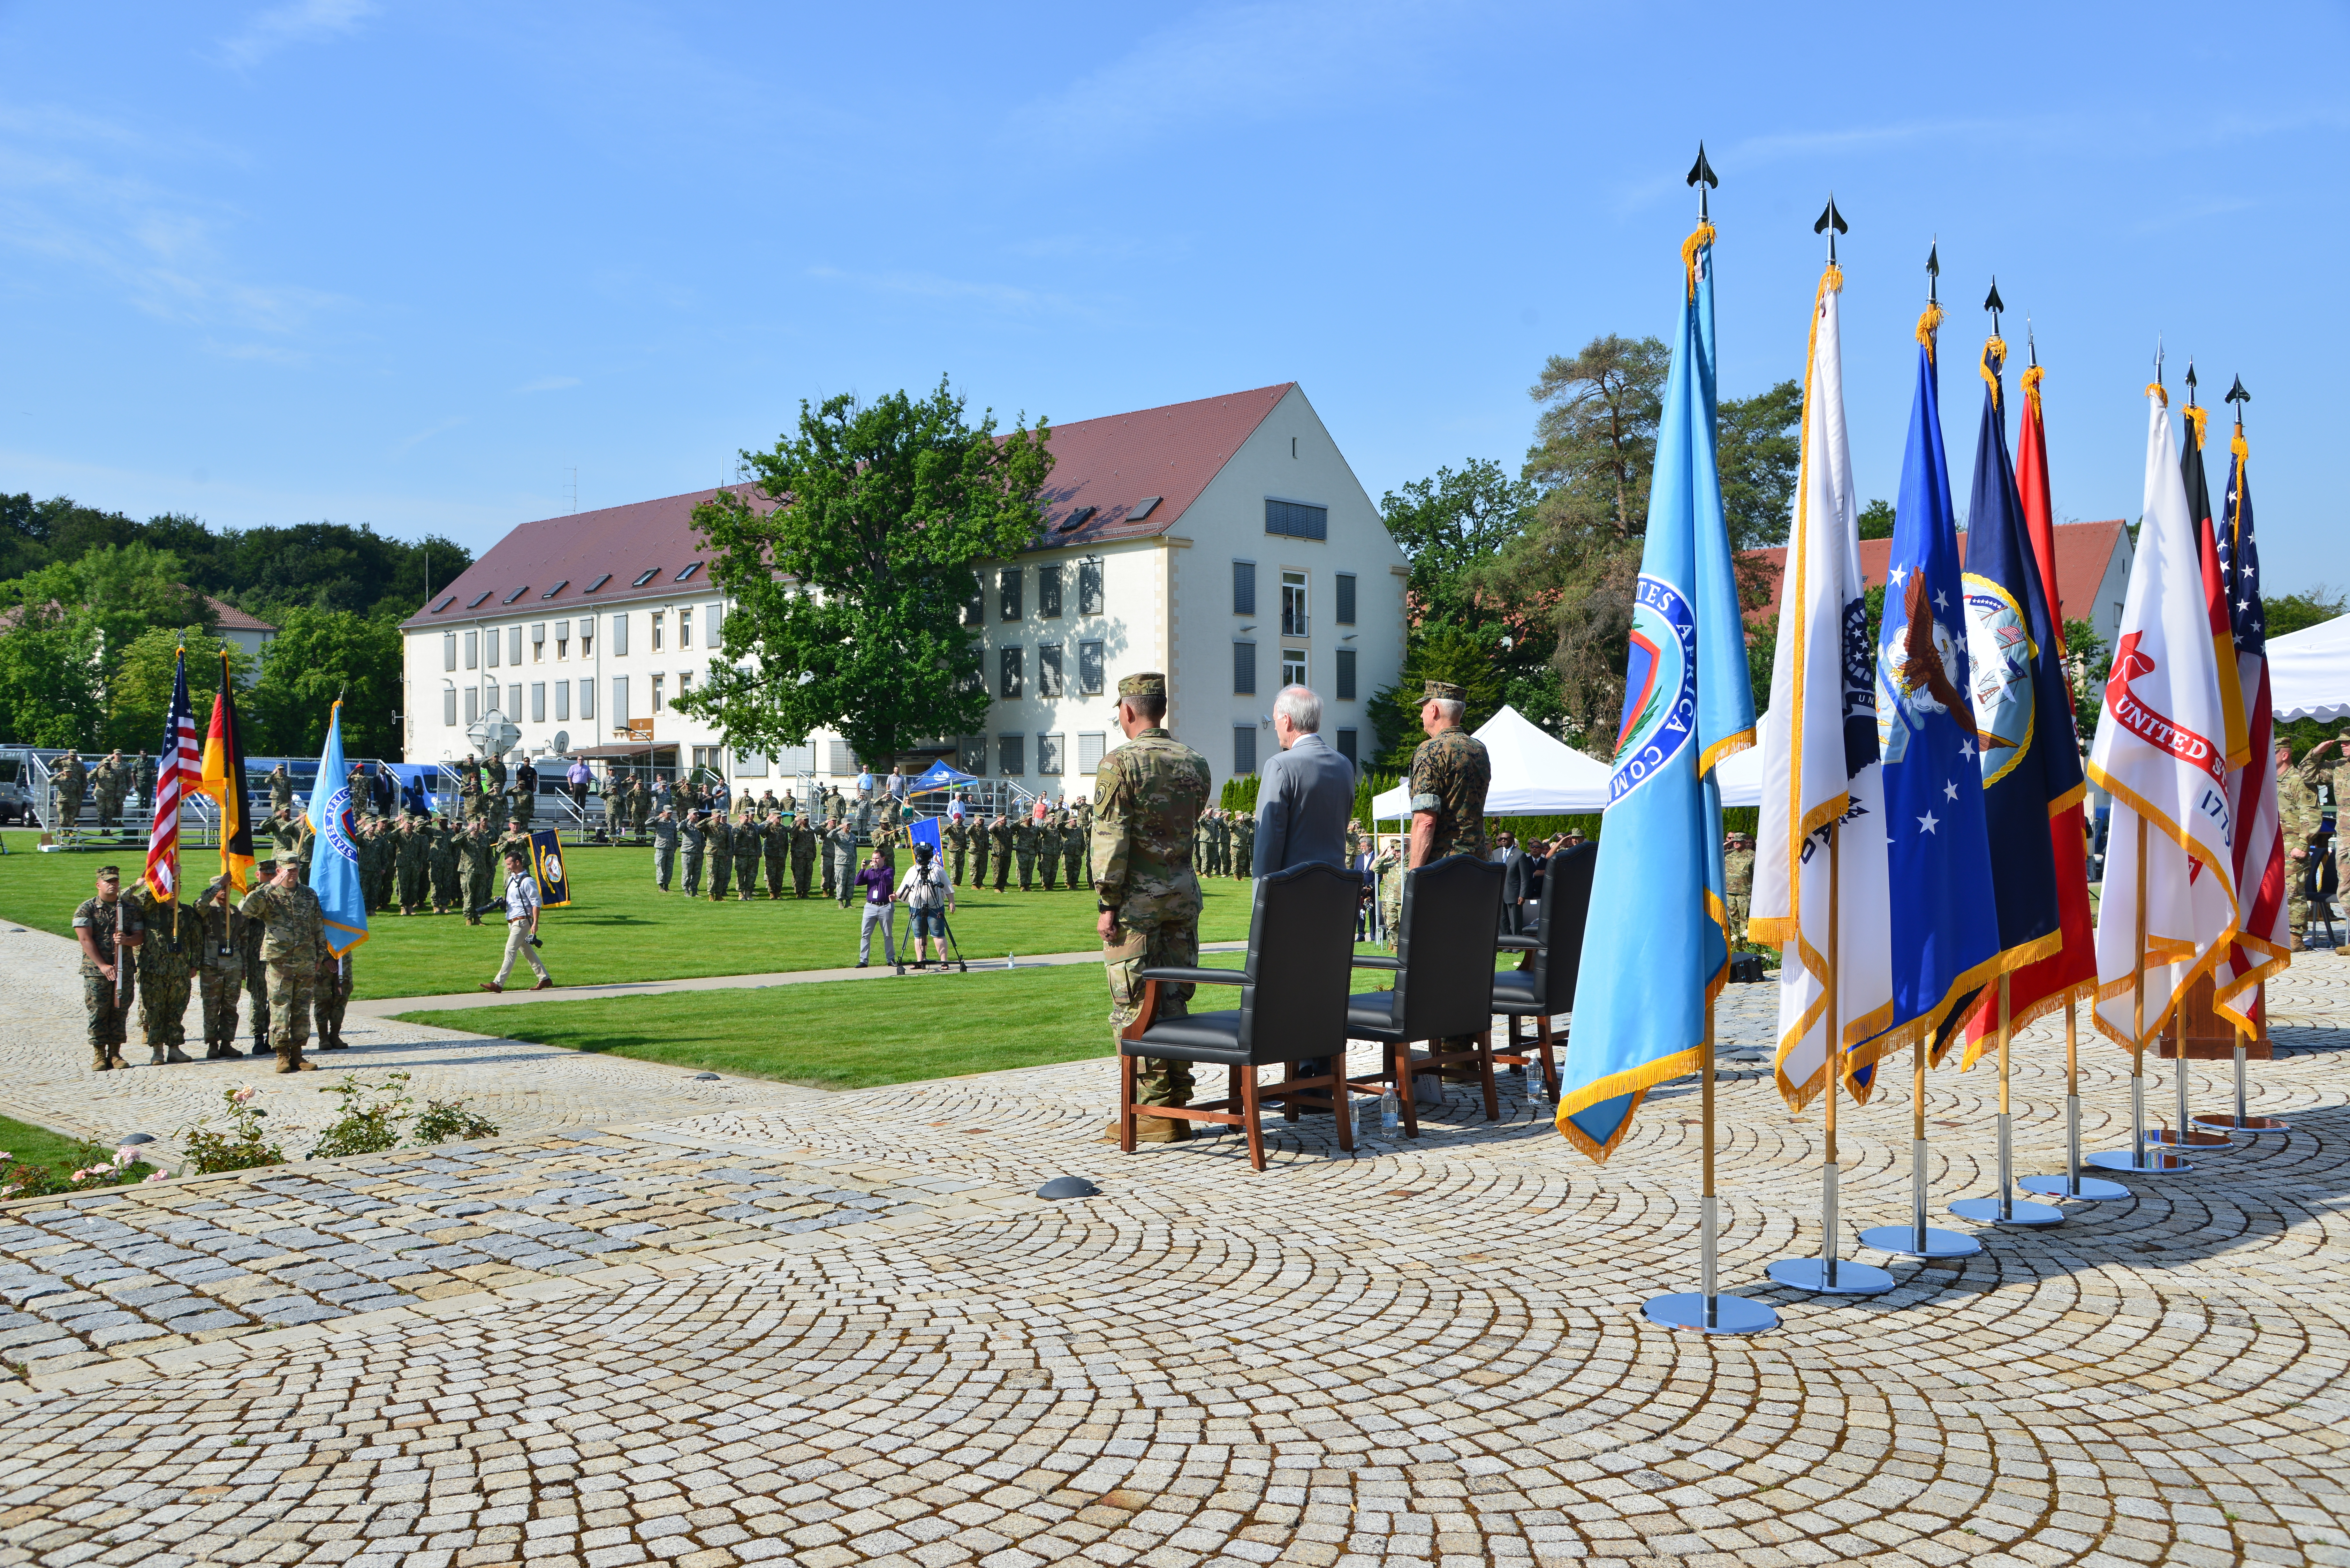 The official party salutes the colors during the U.S. Africa Command change of command at Patch Barracks in Stuttgart, Germany, July 26, 2019. AFRICOM is one of six of the U.S. Defense Department's geographic unified commands and is responsible to the Secretary of Defense for military relations with African nations, the African Union, and African regional security organizations. (U.S. Army photo by Ray Raymond/Released)